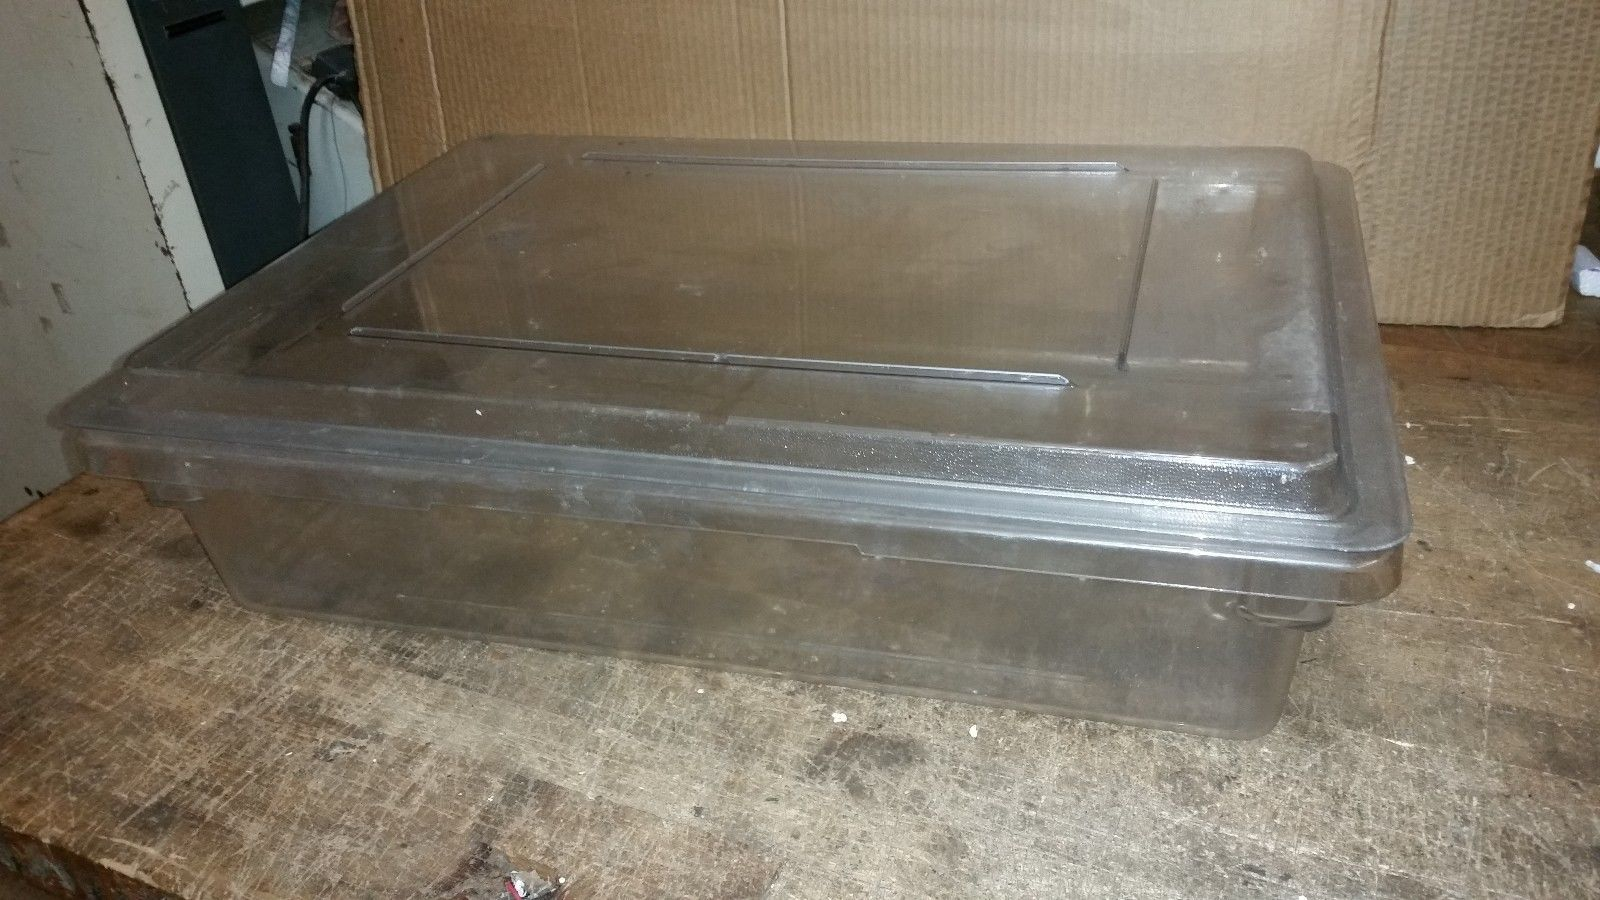 SIX CAMBRO 8.75 GAL FOOD STORAGE BOXES CAMWEAR CLEAR 18266CW WITH LIDS 18X26X6